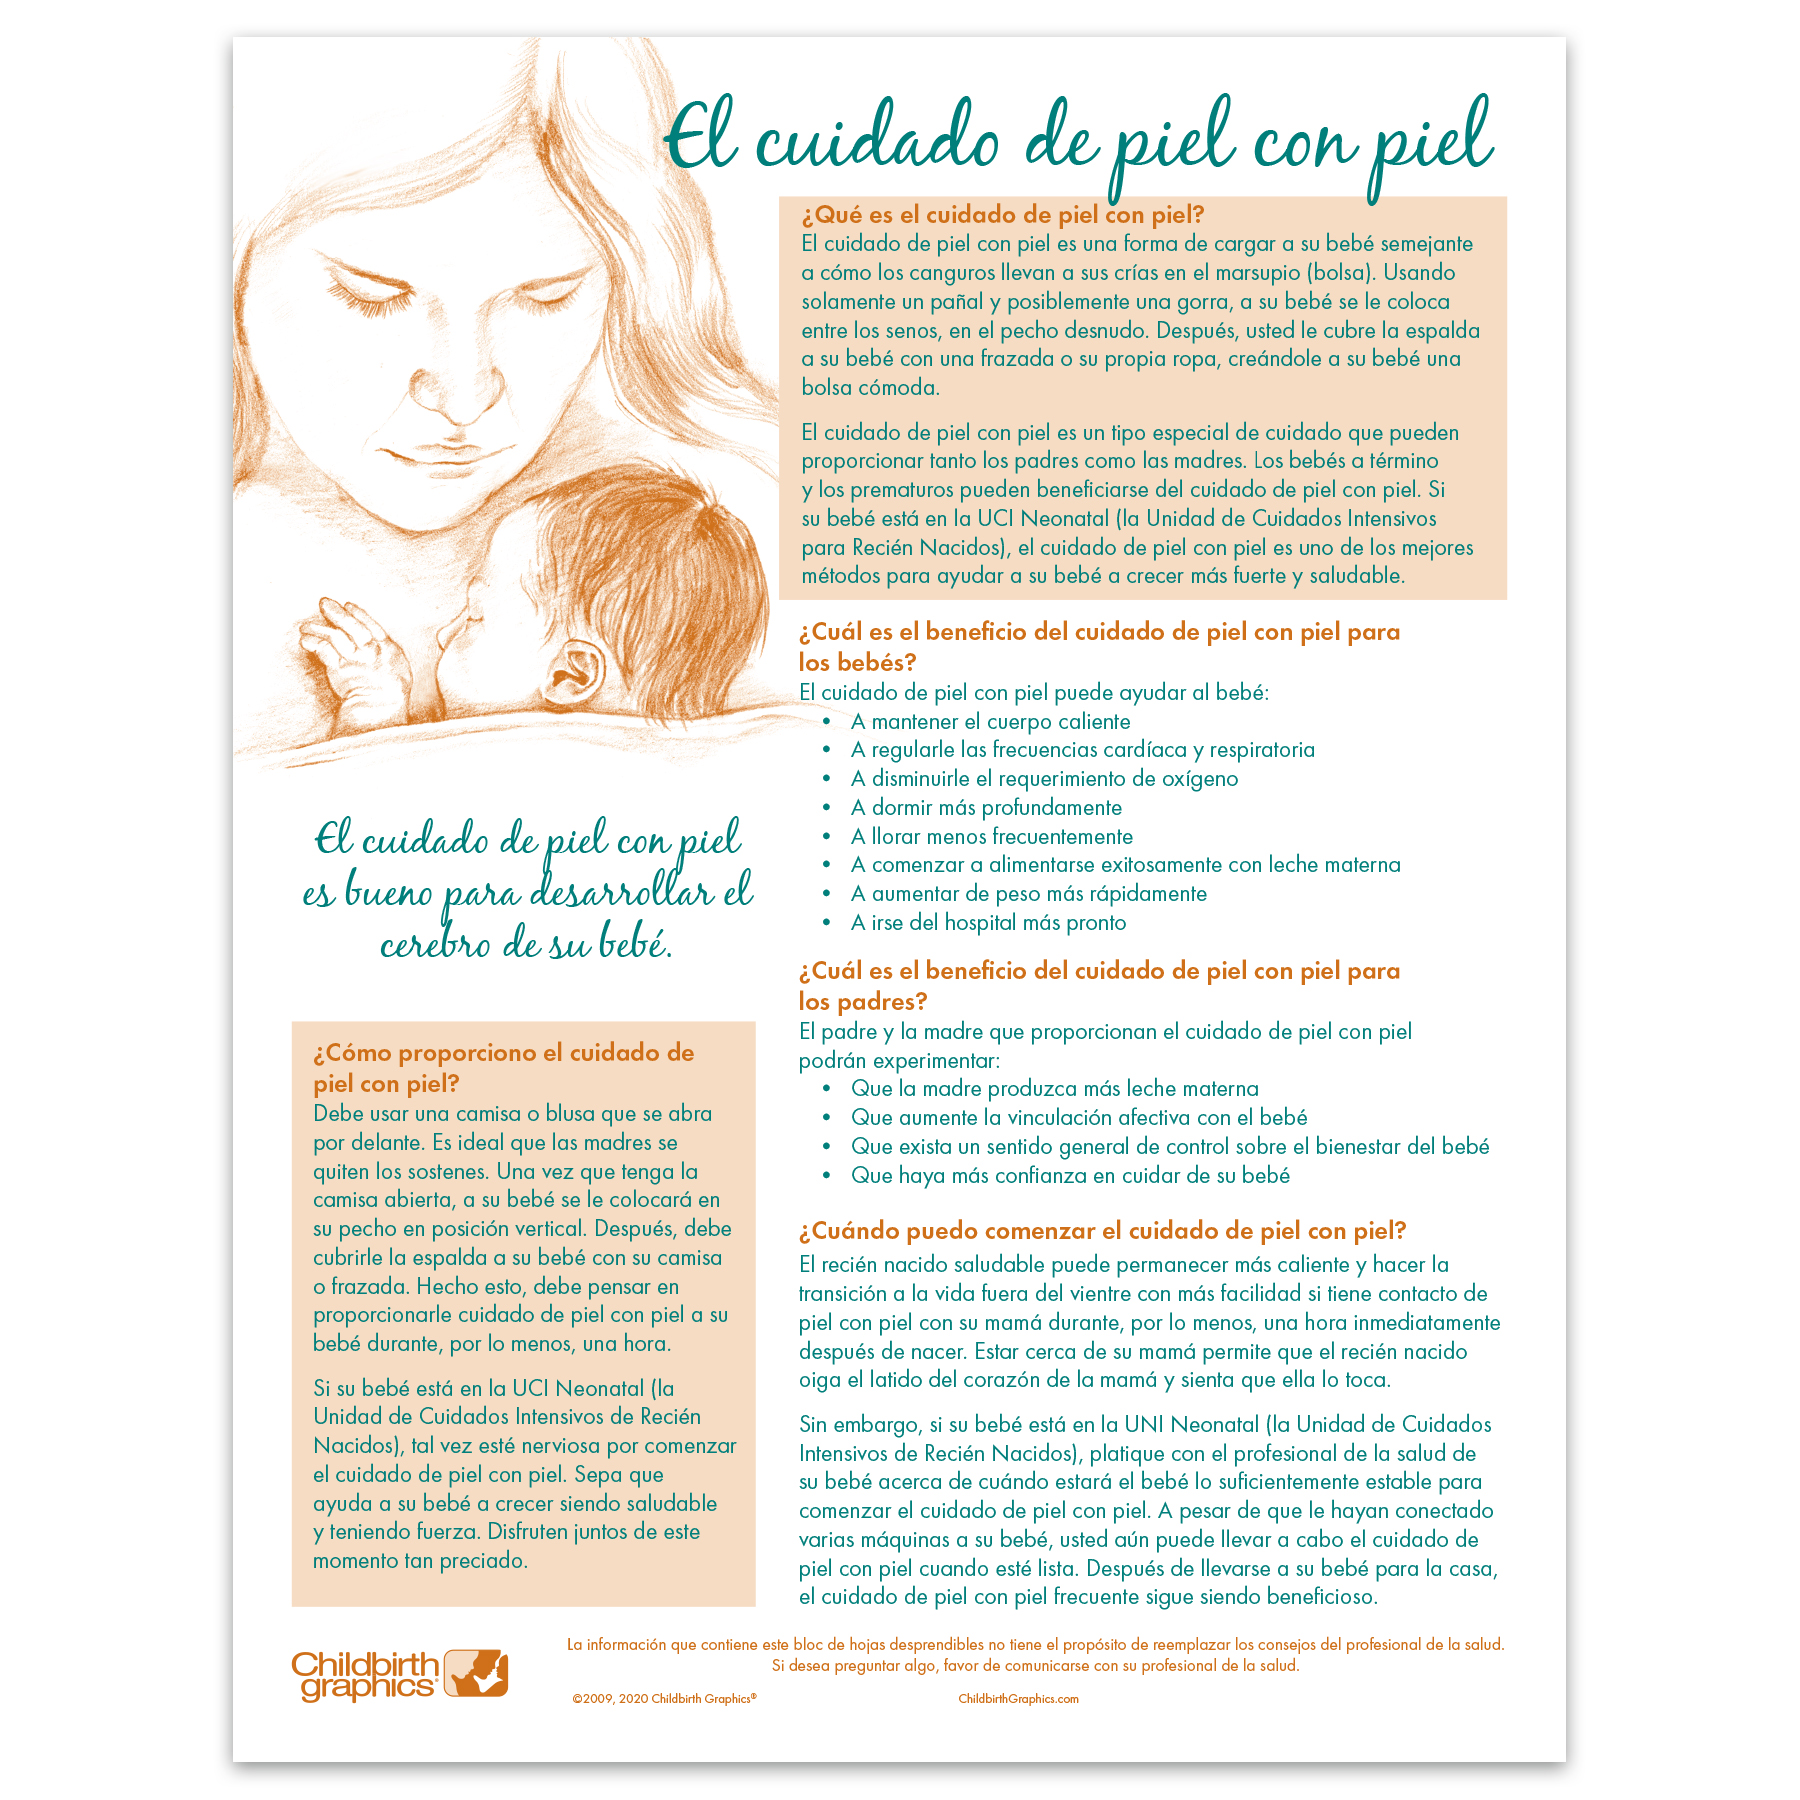 Skin to Skin Care illustrated 2-color tear pad Spanish side, benefits for baby and parents, Childbirth Graphics 52608